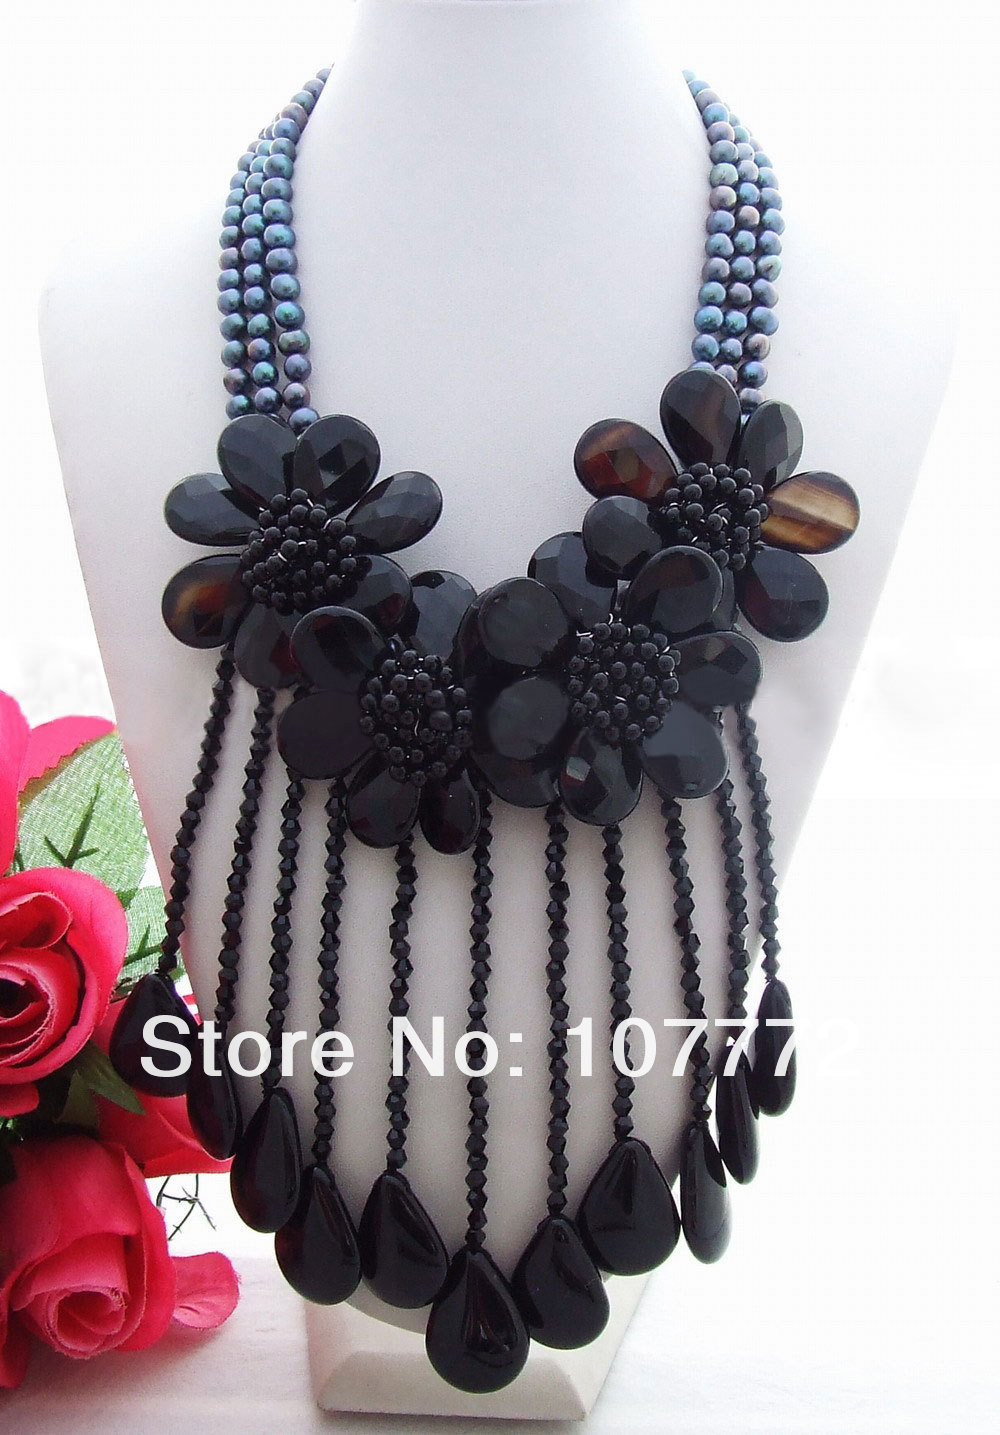 Charming! Pearl&Onyx&Crystal Necklace free shipmentCharming! Pearl&Onyx&Crystal Necklace free shipment